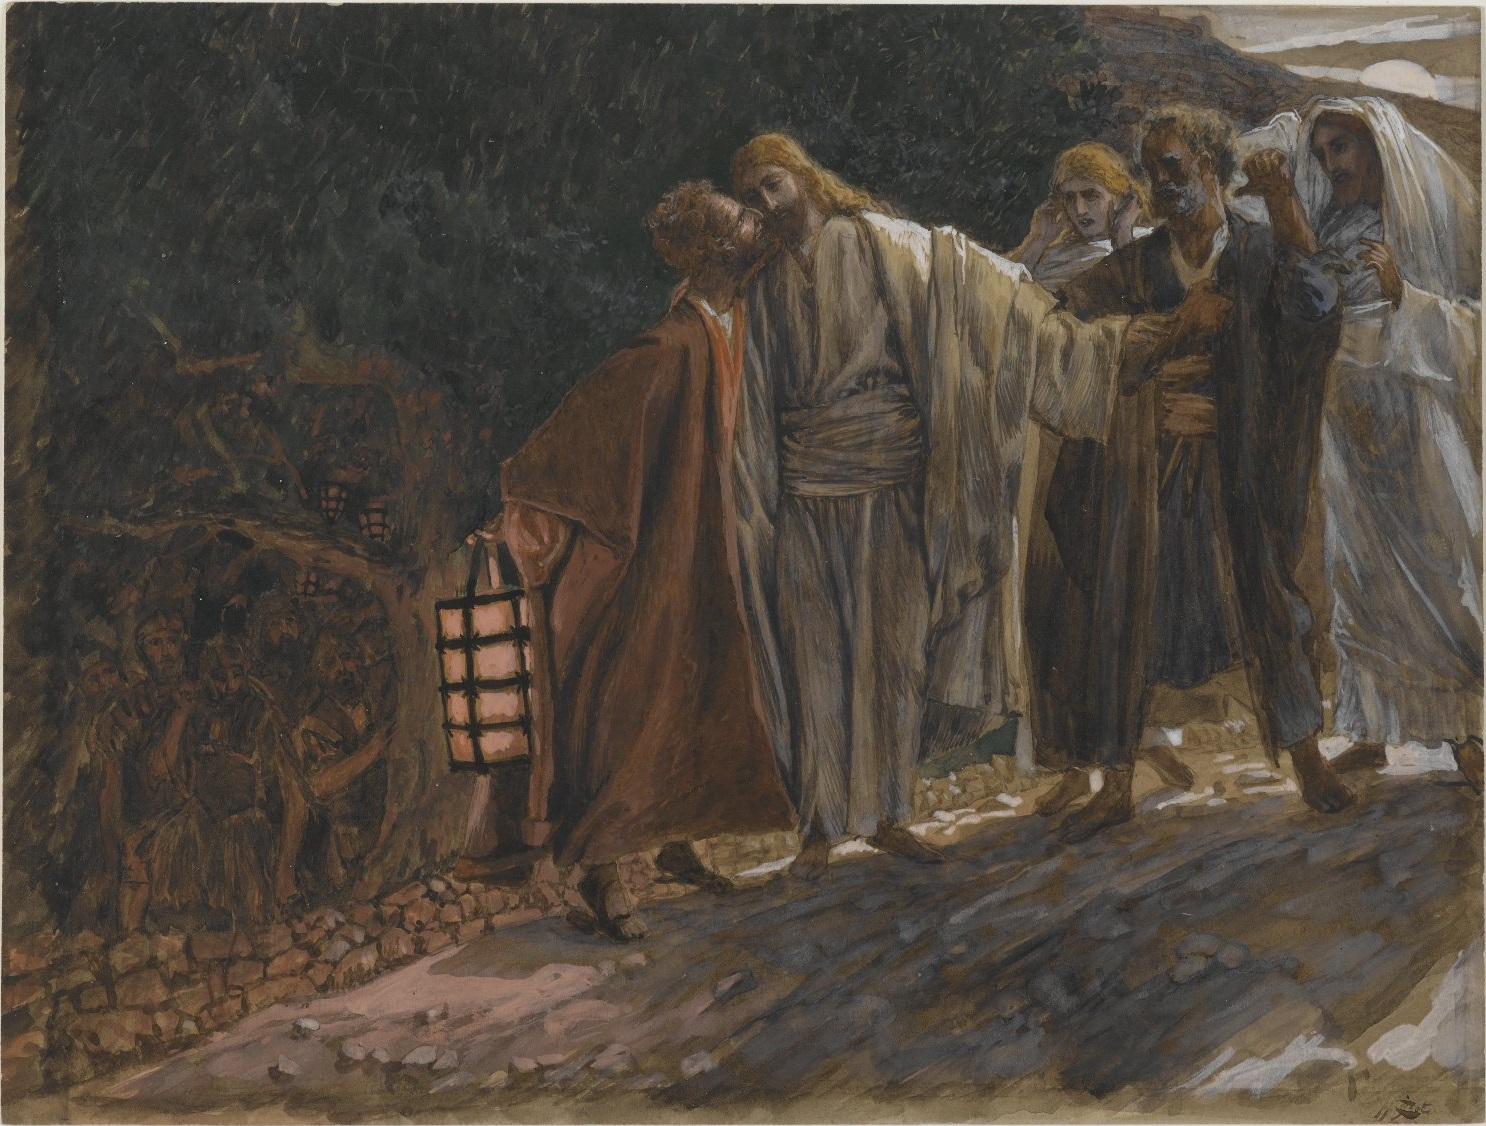 File:Brooklyn Museum - The Kiss of Judas (Le baiser de Judas) - James Tissot.jpg